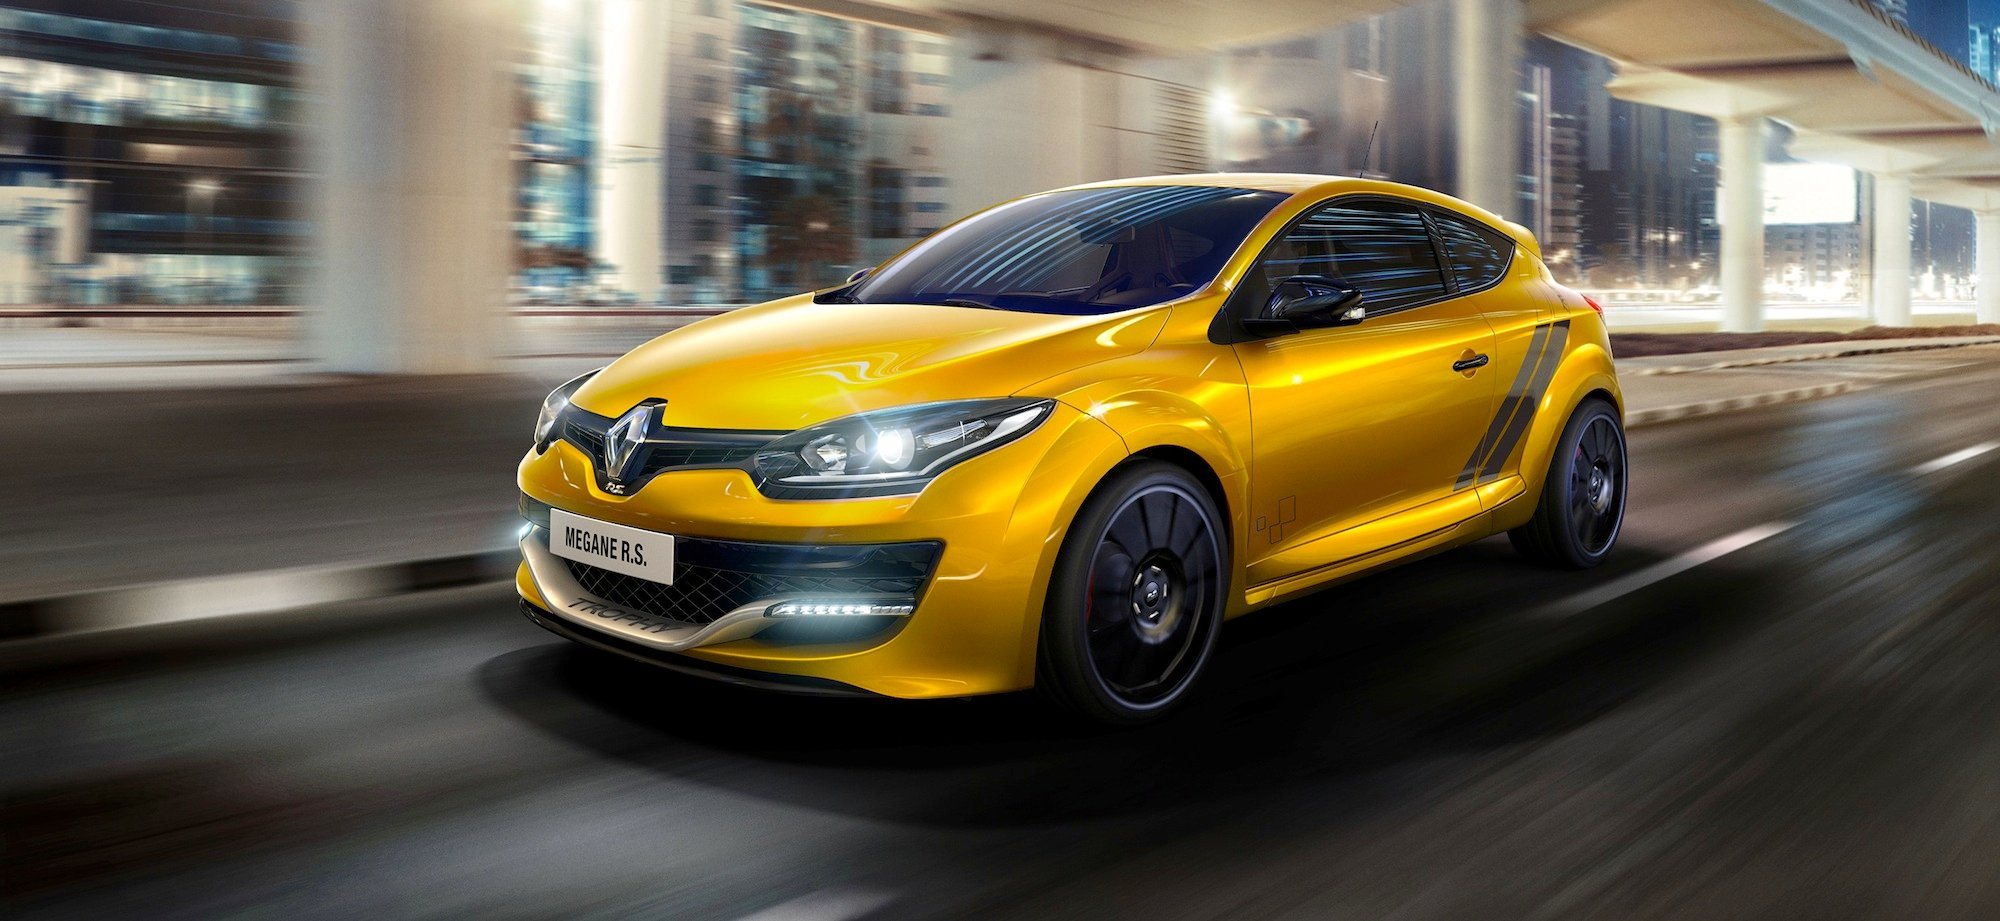 renault megane rs 275 trophy 202kw limited edition hot hatch is model 39 s most powerful ever. Black Bedroom Furniture Sets. Home Design Ideas